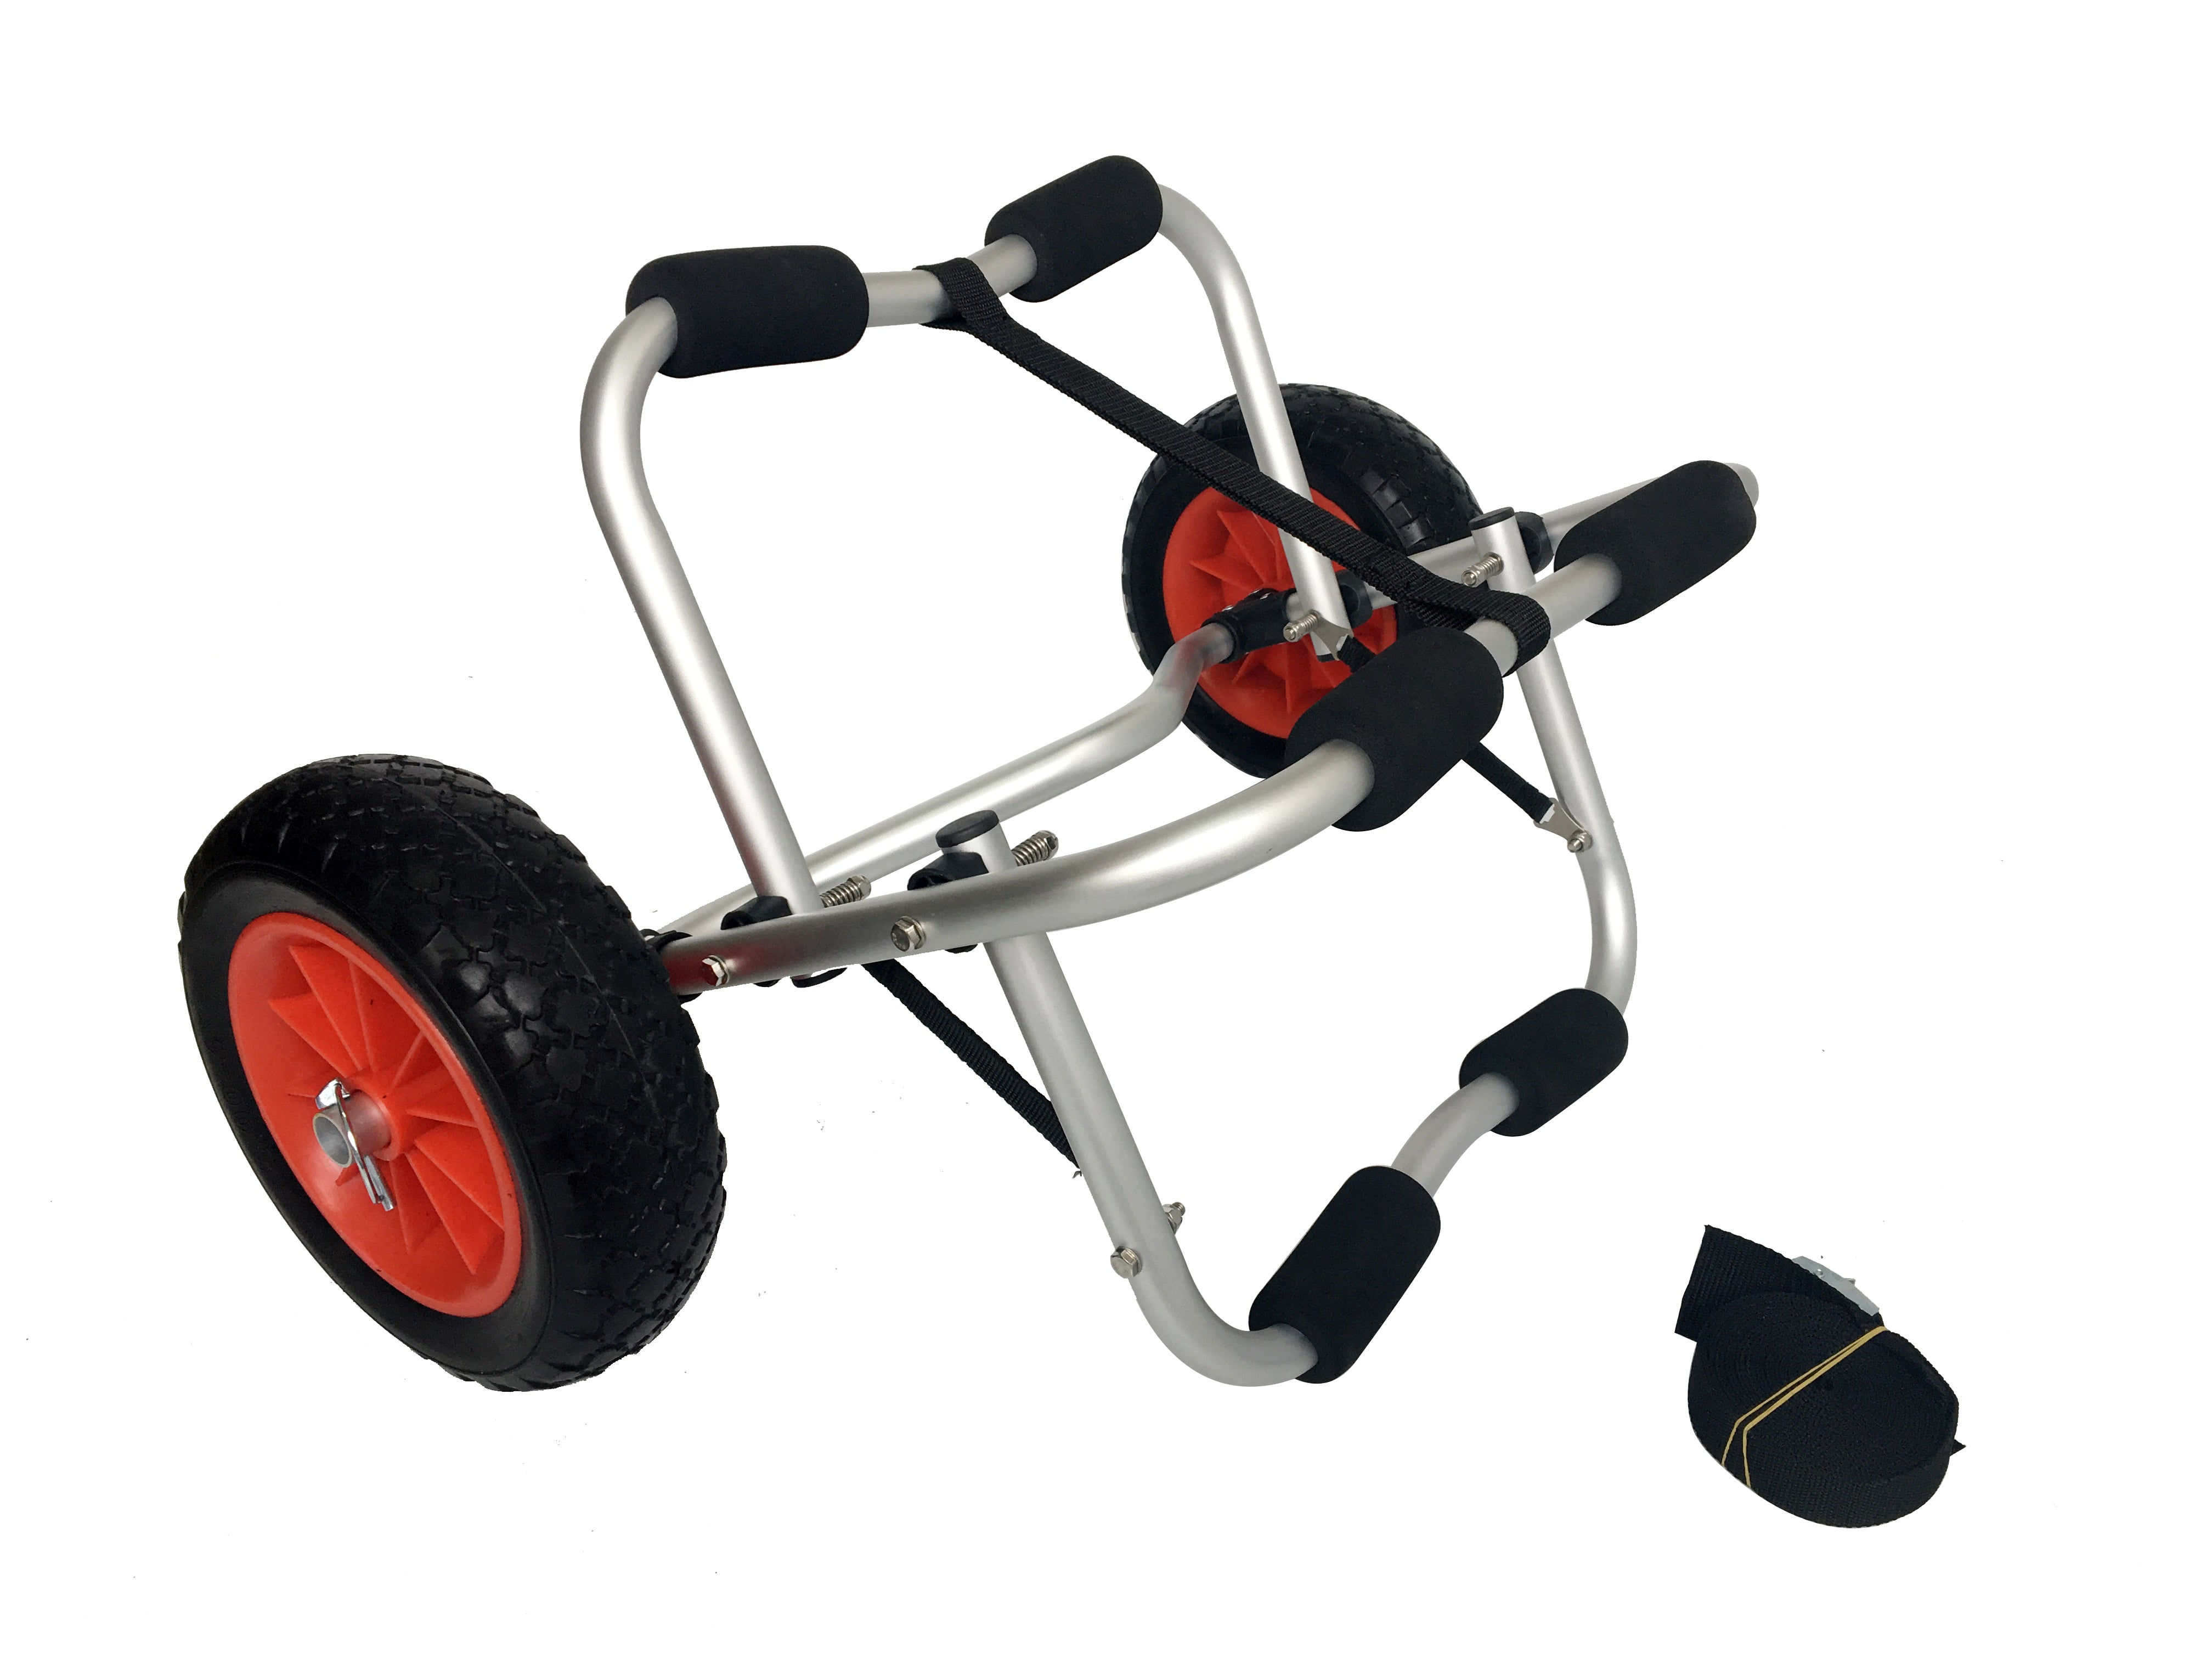 Vanhunks Kayak Dolly